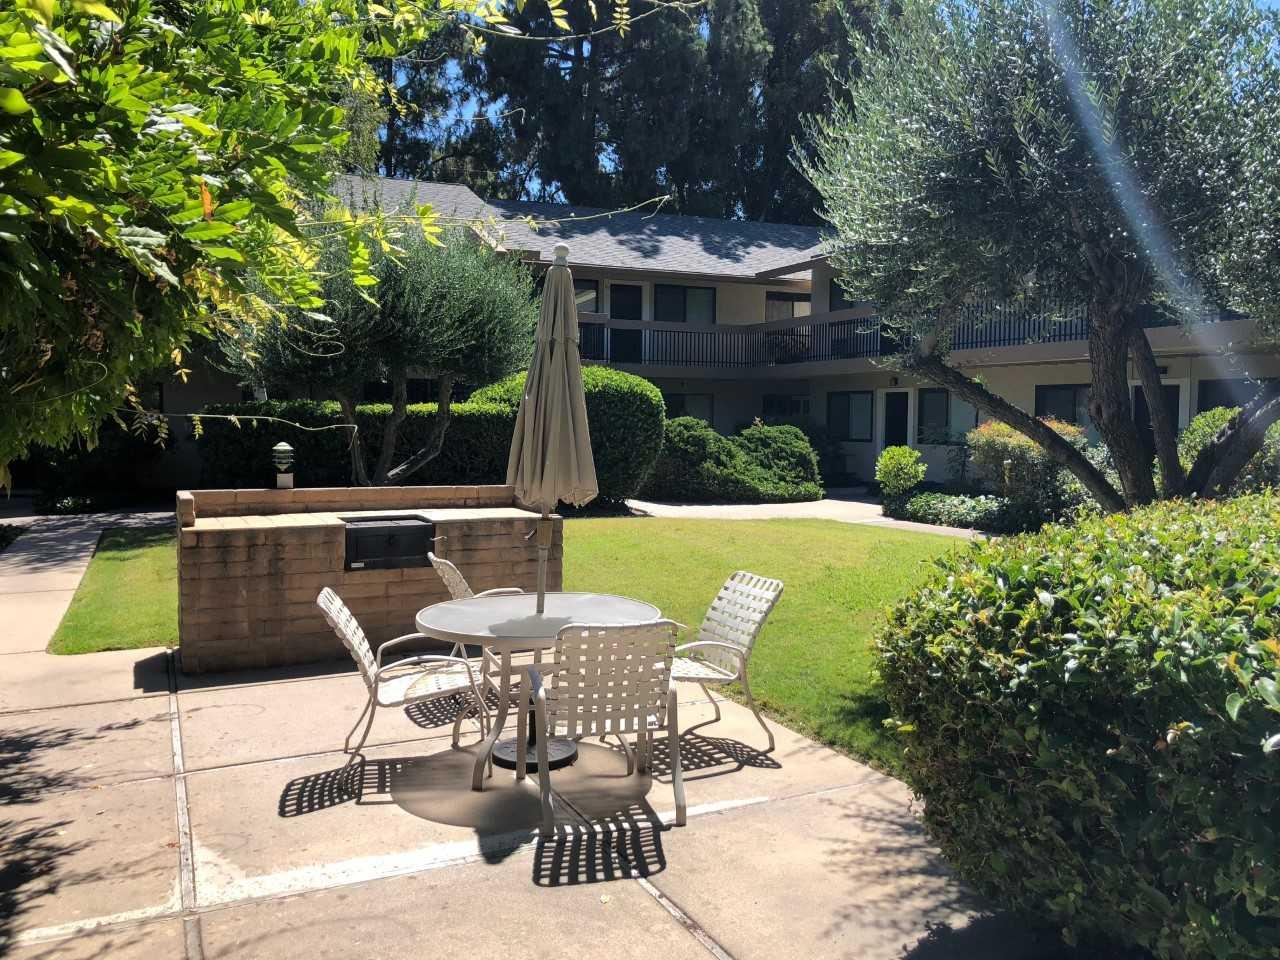 Close to everything and move-in ready! Spacious ground-floor end unit condo that has  large bedroom w/ walk-in closet, new carpet and paint throughout. Low monthly HOA  that covers water and garbage in addition to maintaining the grounds and inviting pool. Walk to the Pruneyard & its many shops and restaurants, 1/3 mile from Los Gatos Creek Trail & Campbell Park, 1/2 mile from Downtown Campbell and its unrivaled Farmer's Market, 4/5 mile from Campbell Library, under 1 mile from Whole Foods. Convenient access to 880, 17, & 280, Great public schools as well: Bagby Elementary, Price Charter Middle, Branham High. Great first time buyer opportunity, welcome home